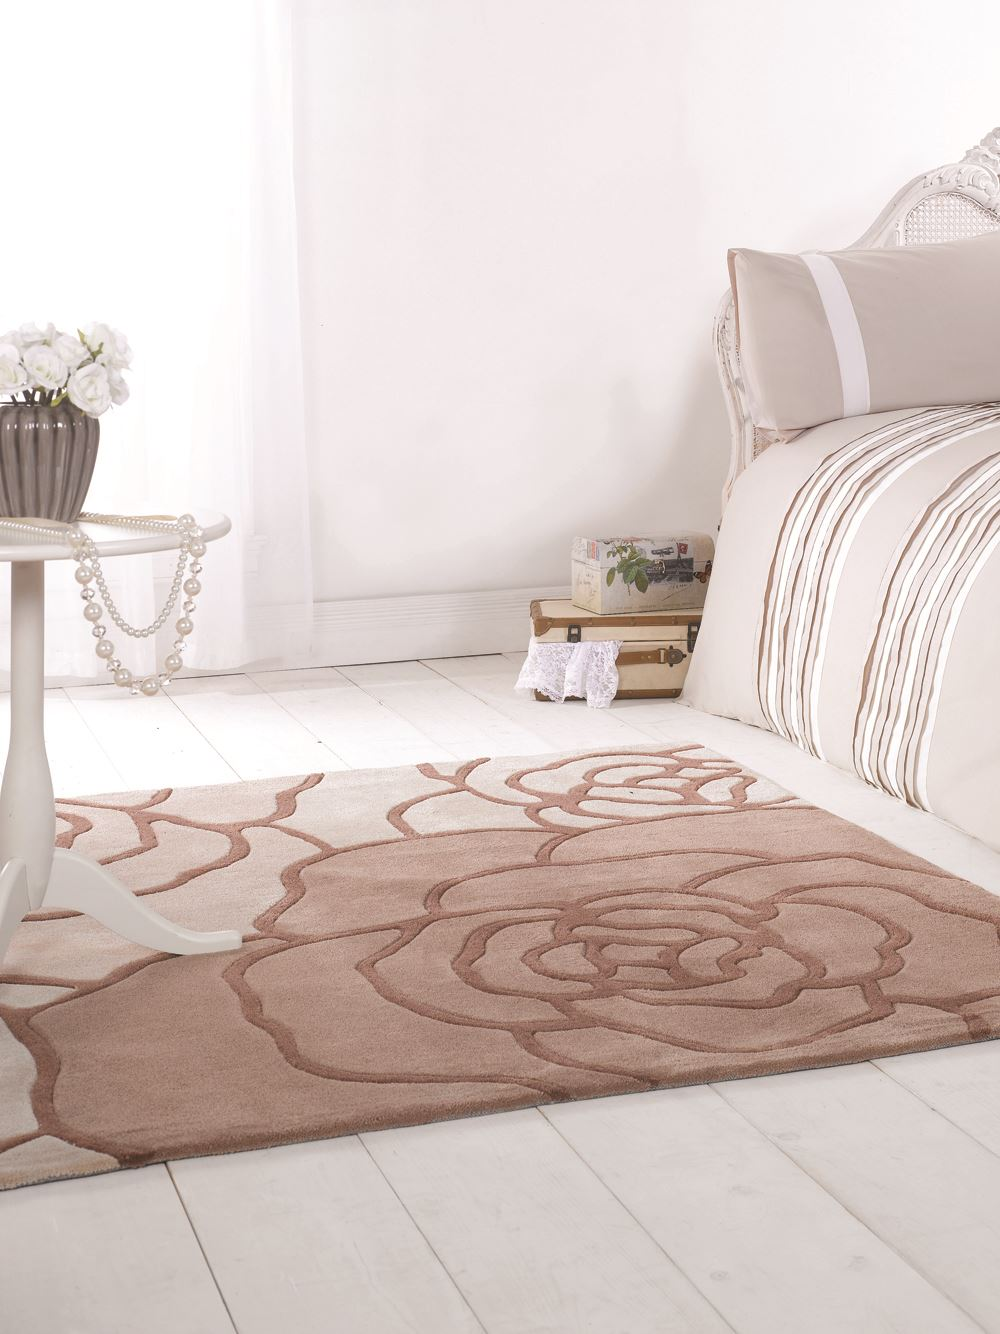 Rugs For Bedroom Flair Rugs Infinite Rug Collection Round Rectangle Polyester Rugs